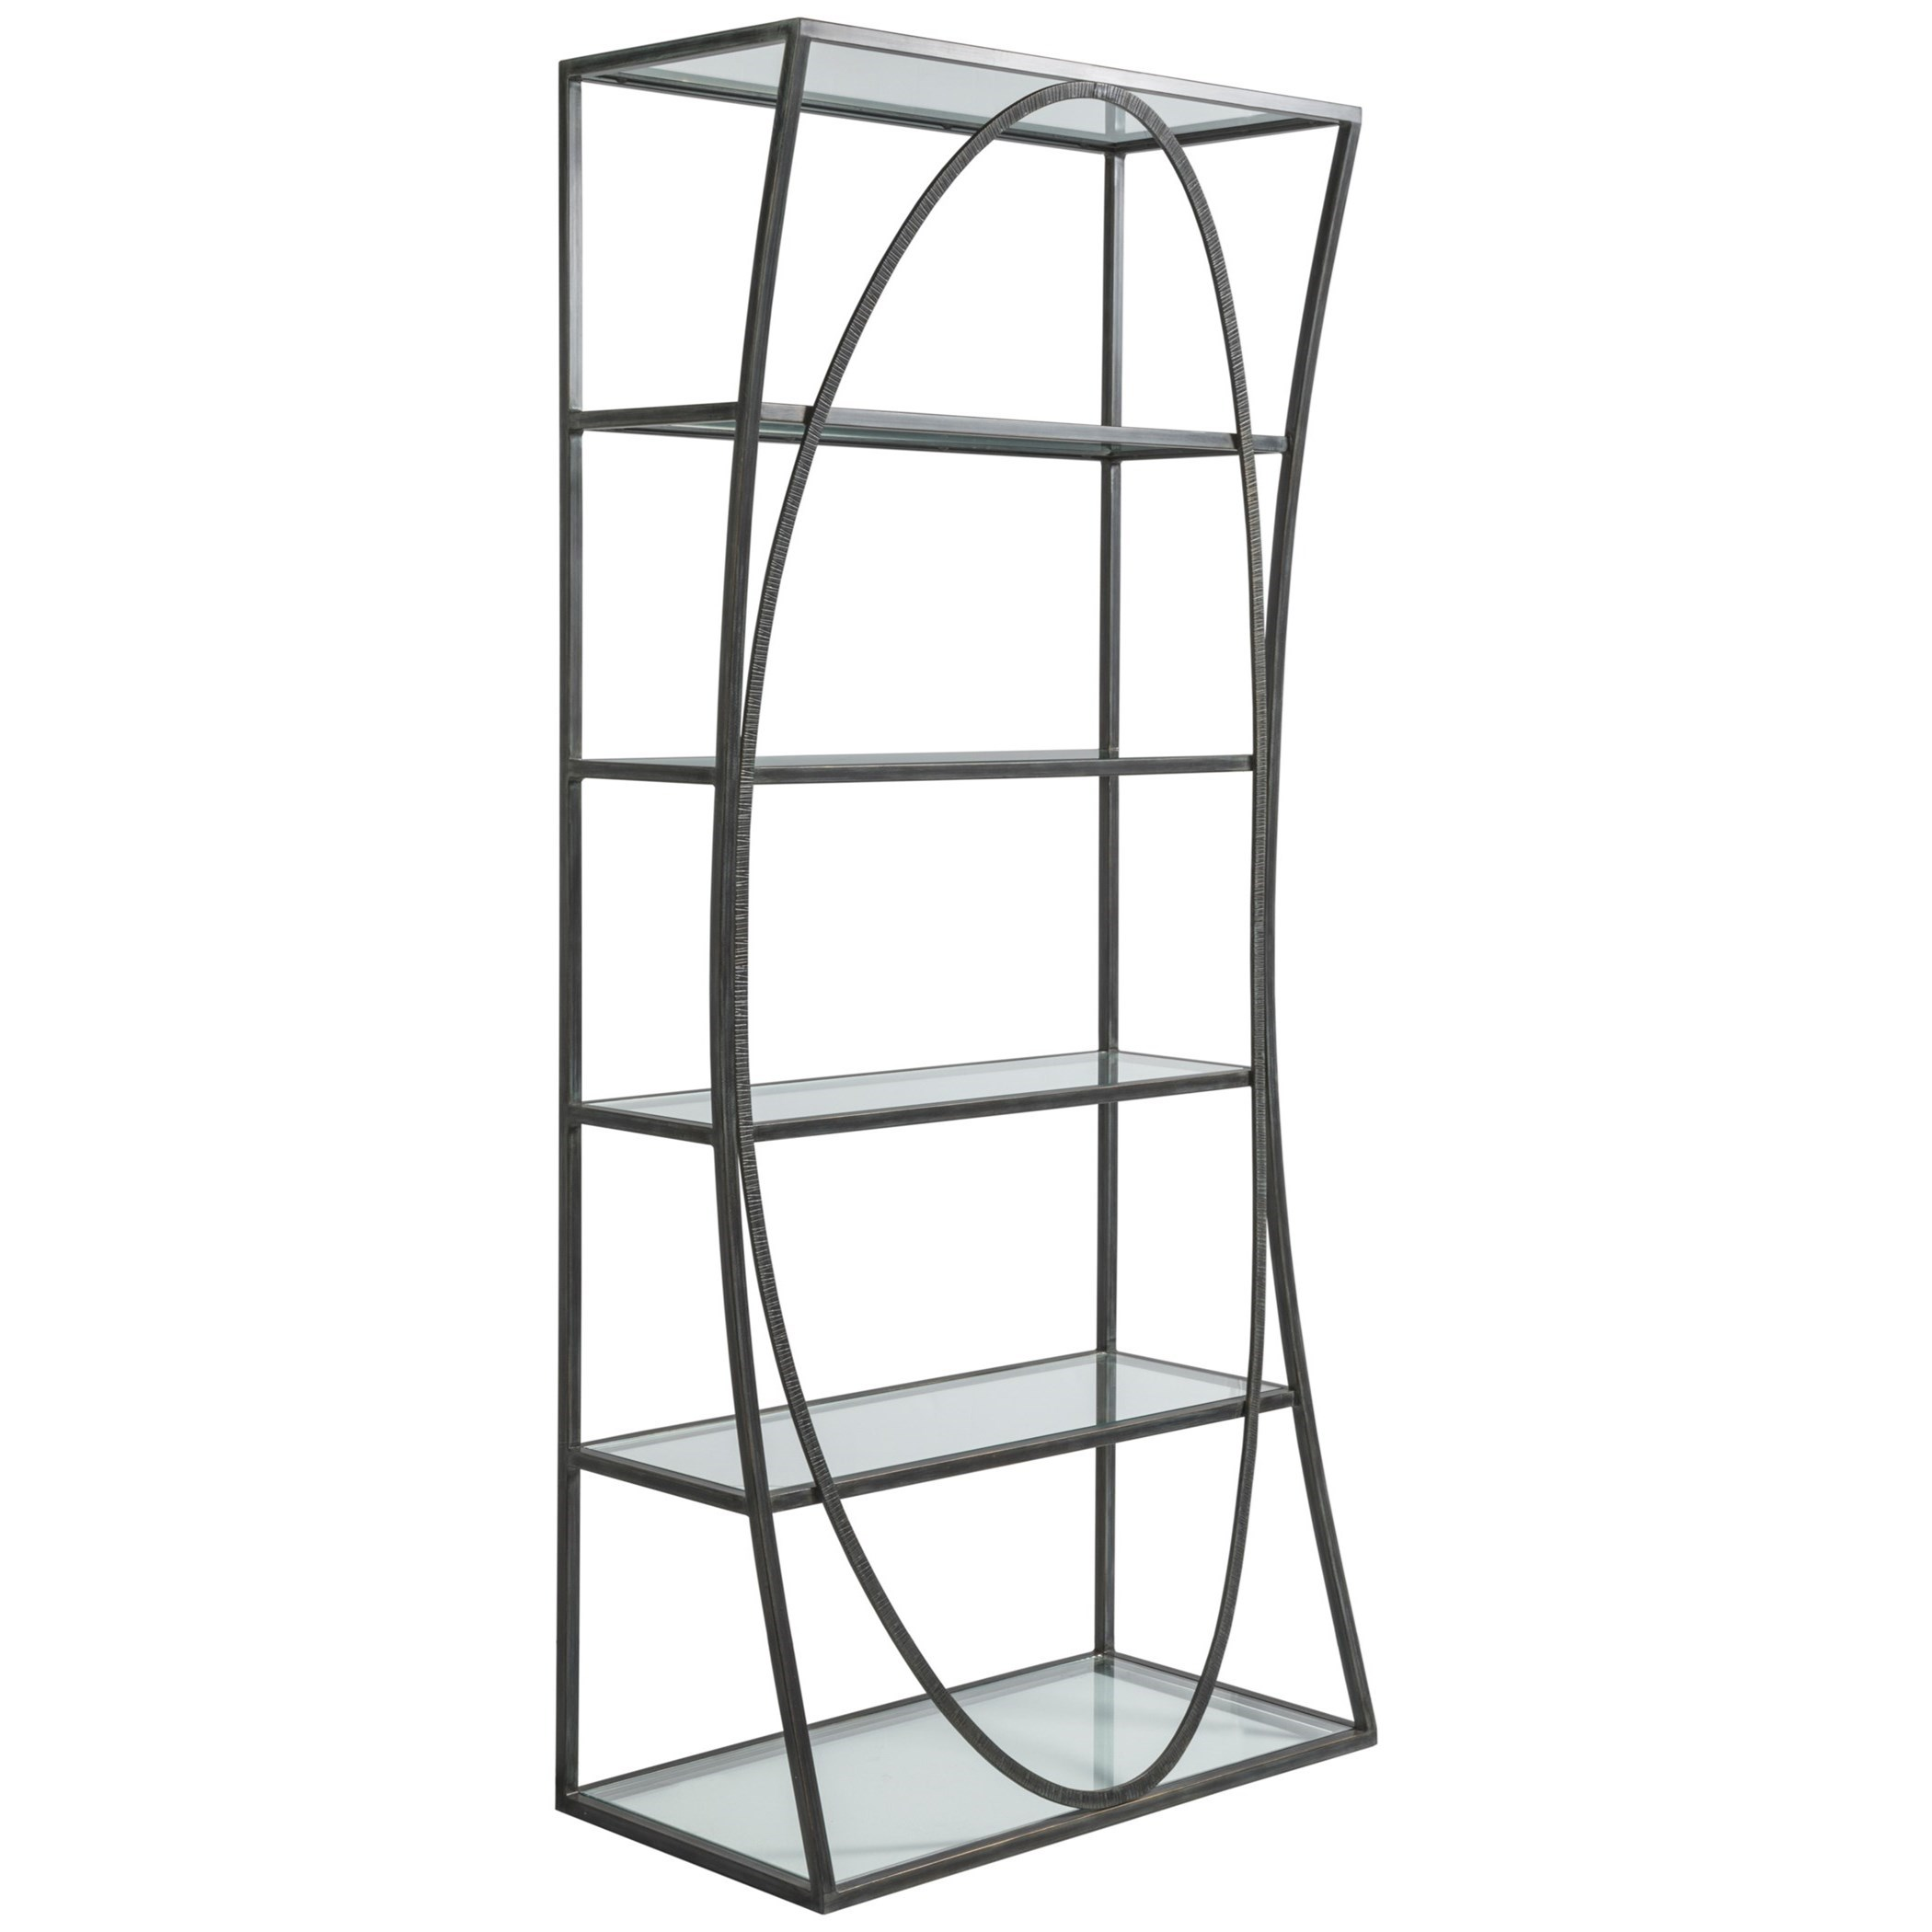 Metal Designs Ellipse Etagere by Artistica at Sprintz Furniture